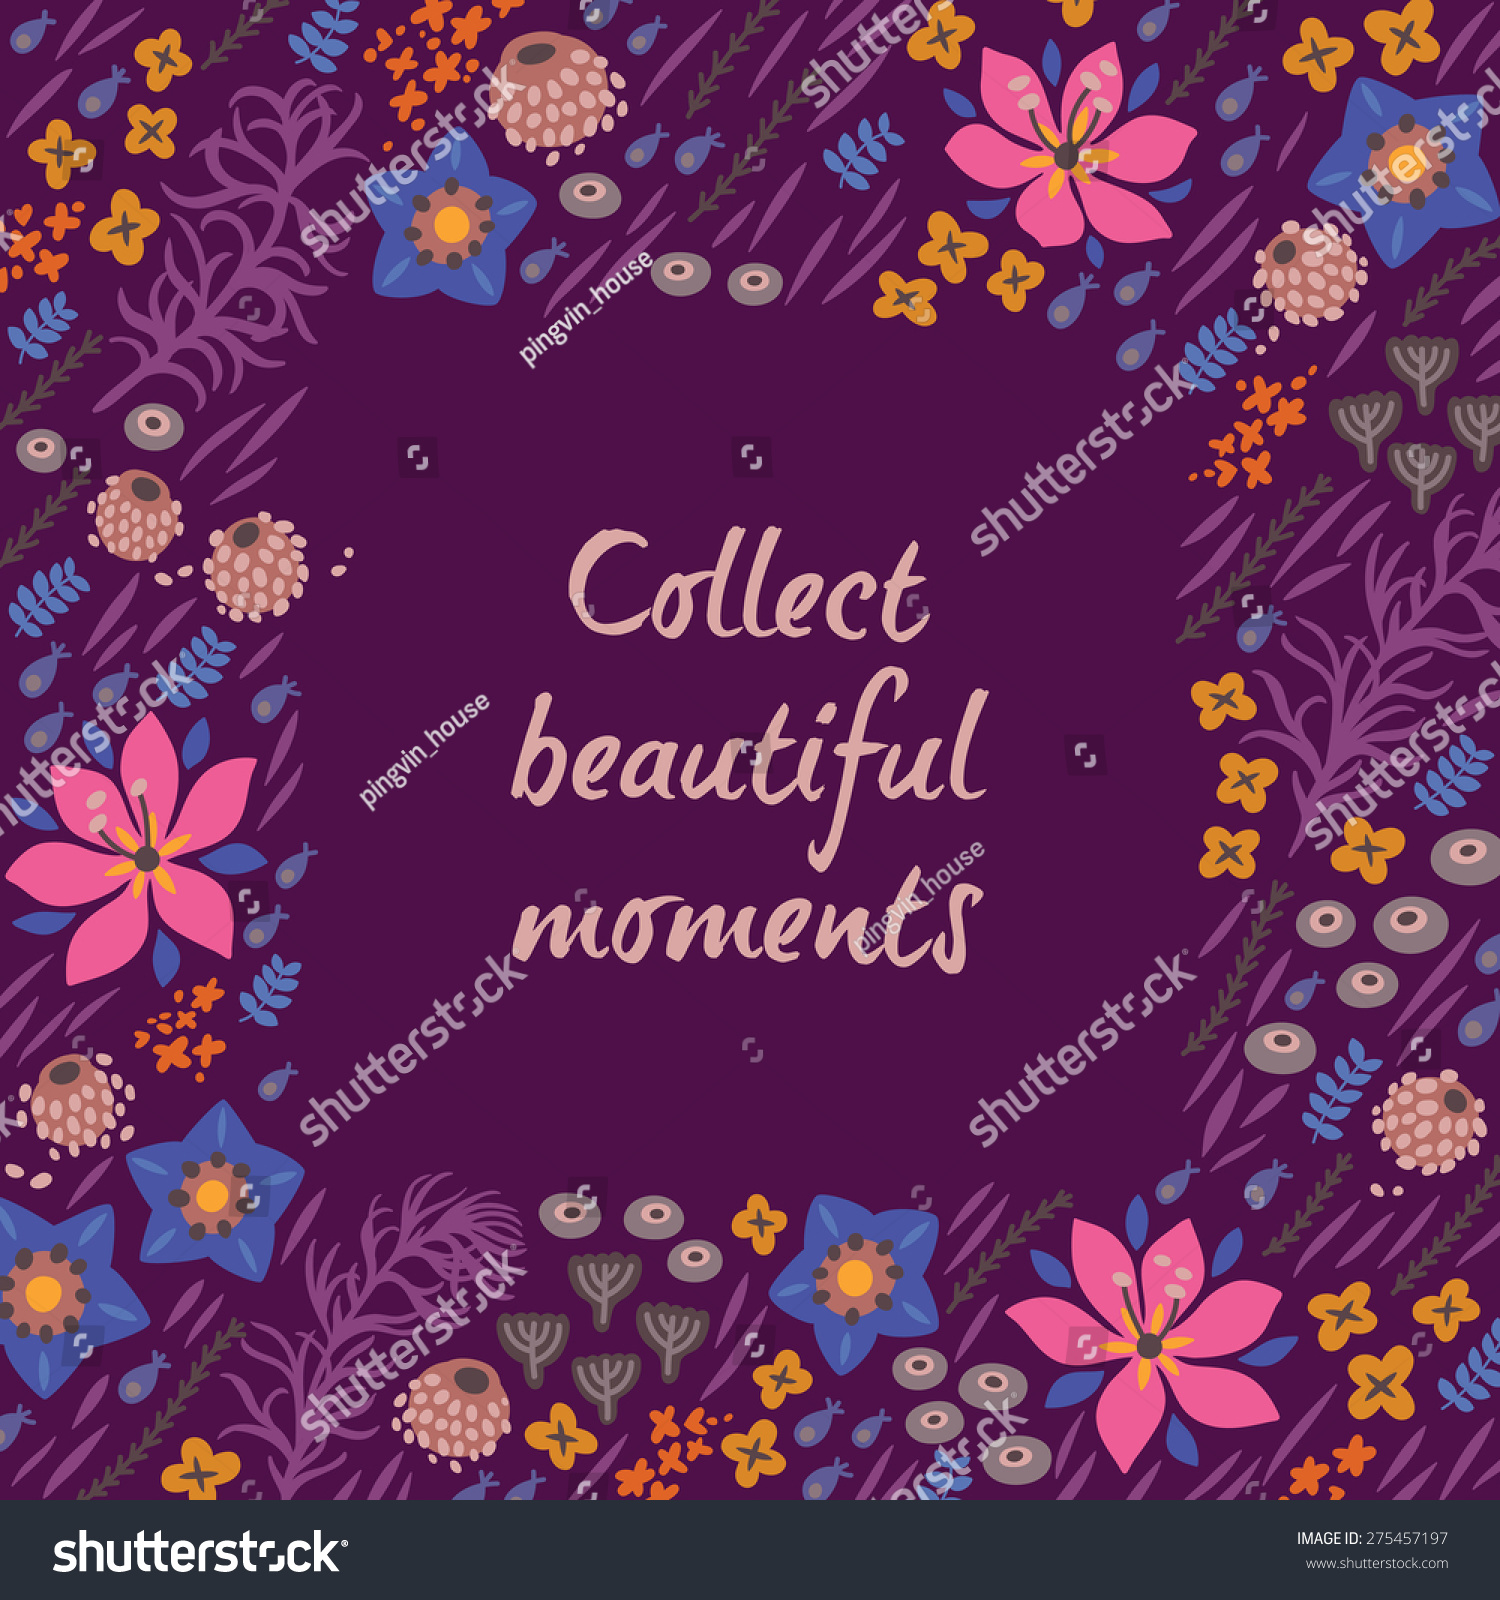 Inspirational Motivational Quotes Background Bright Floral Stock